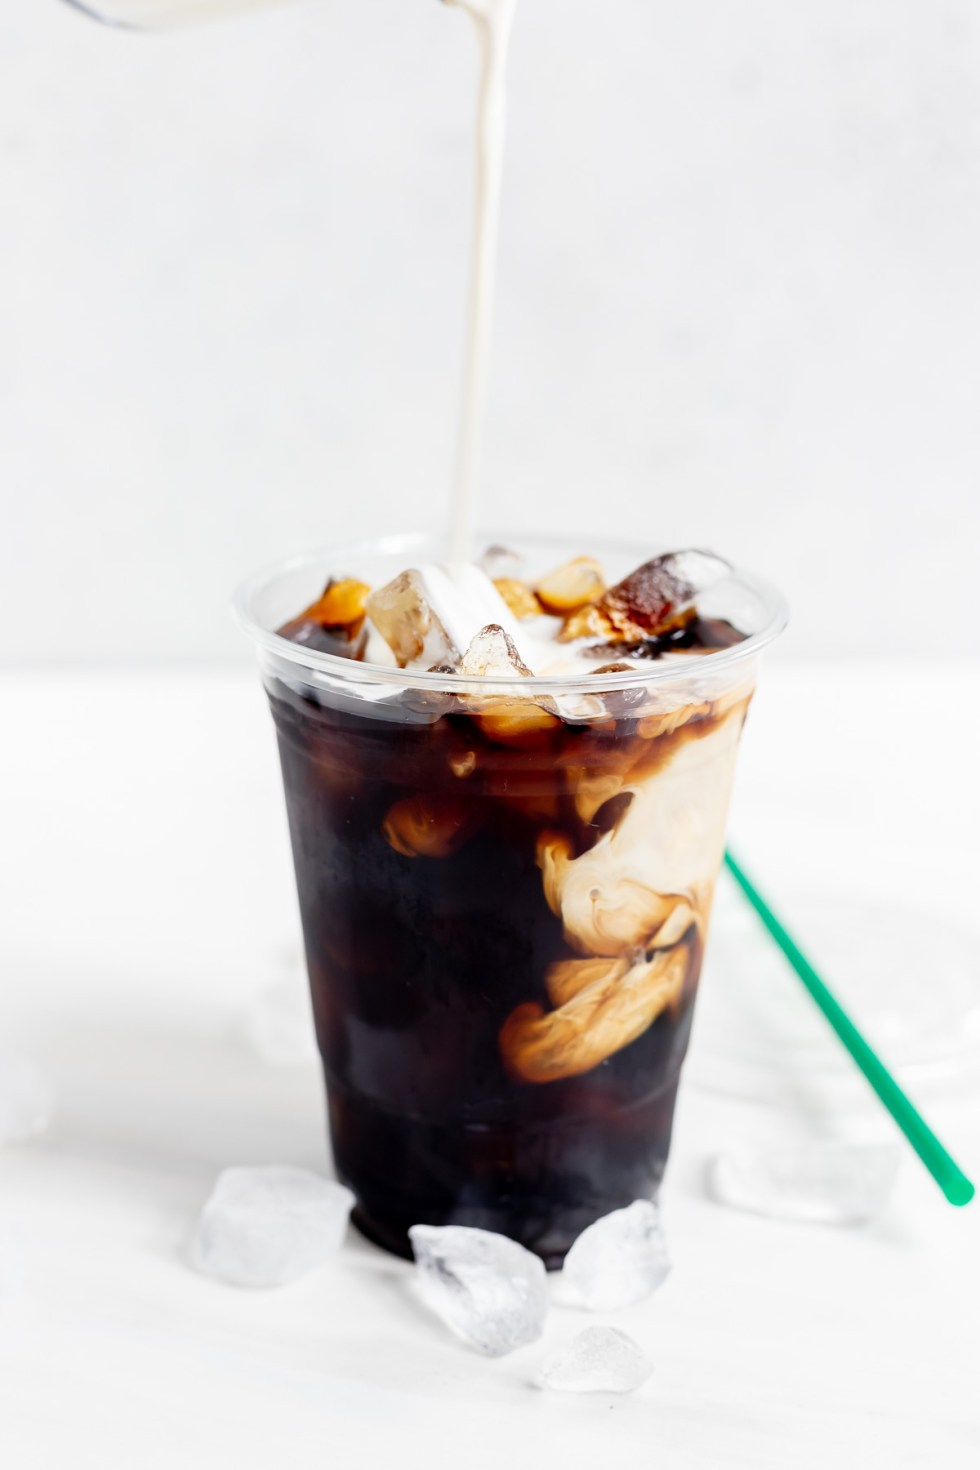 coffee cream and ice in clear cup